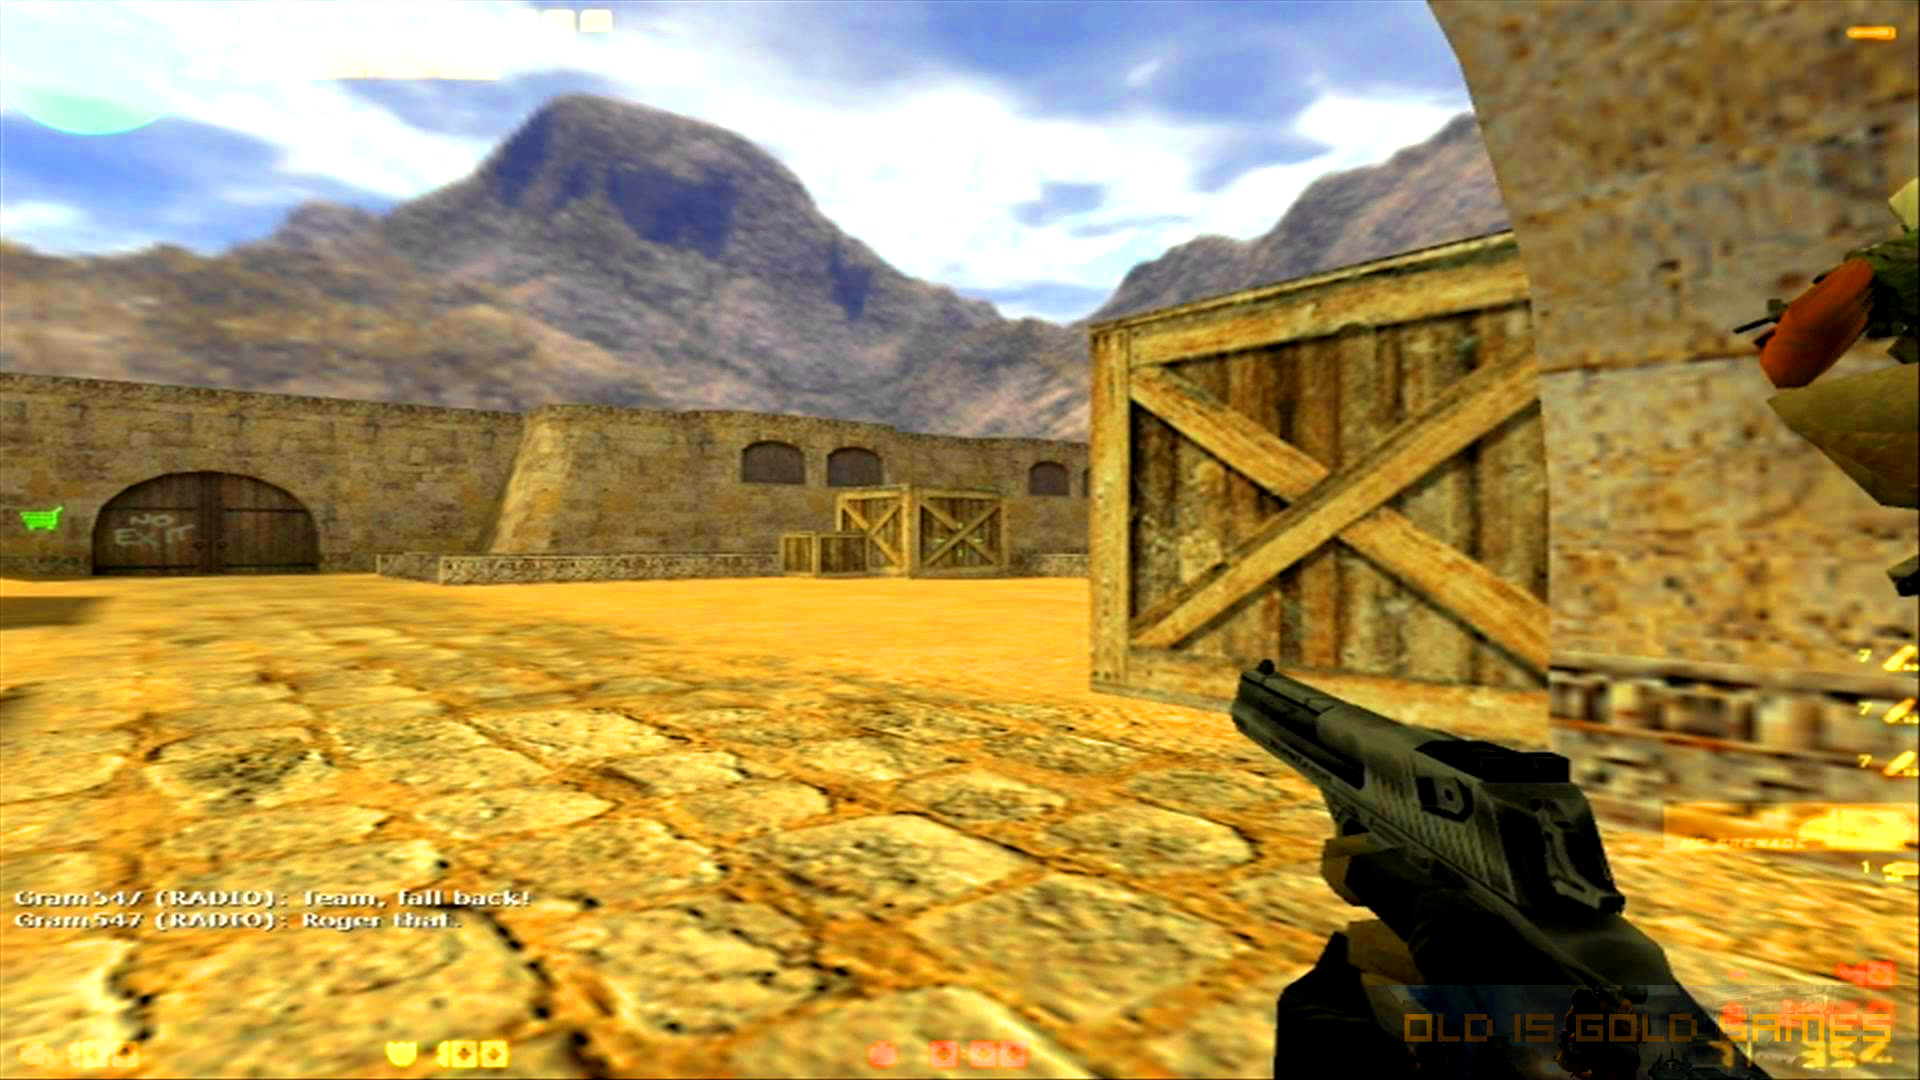 The best version of Counter Strike so far